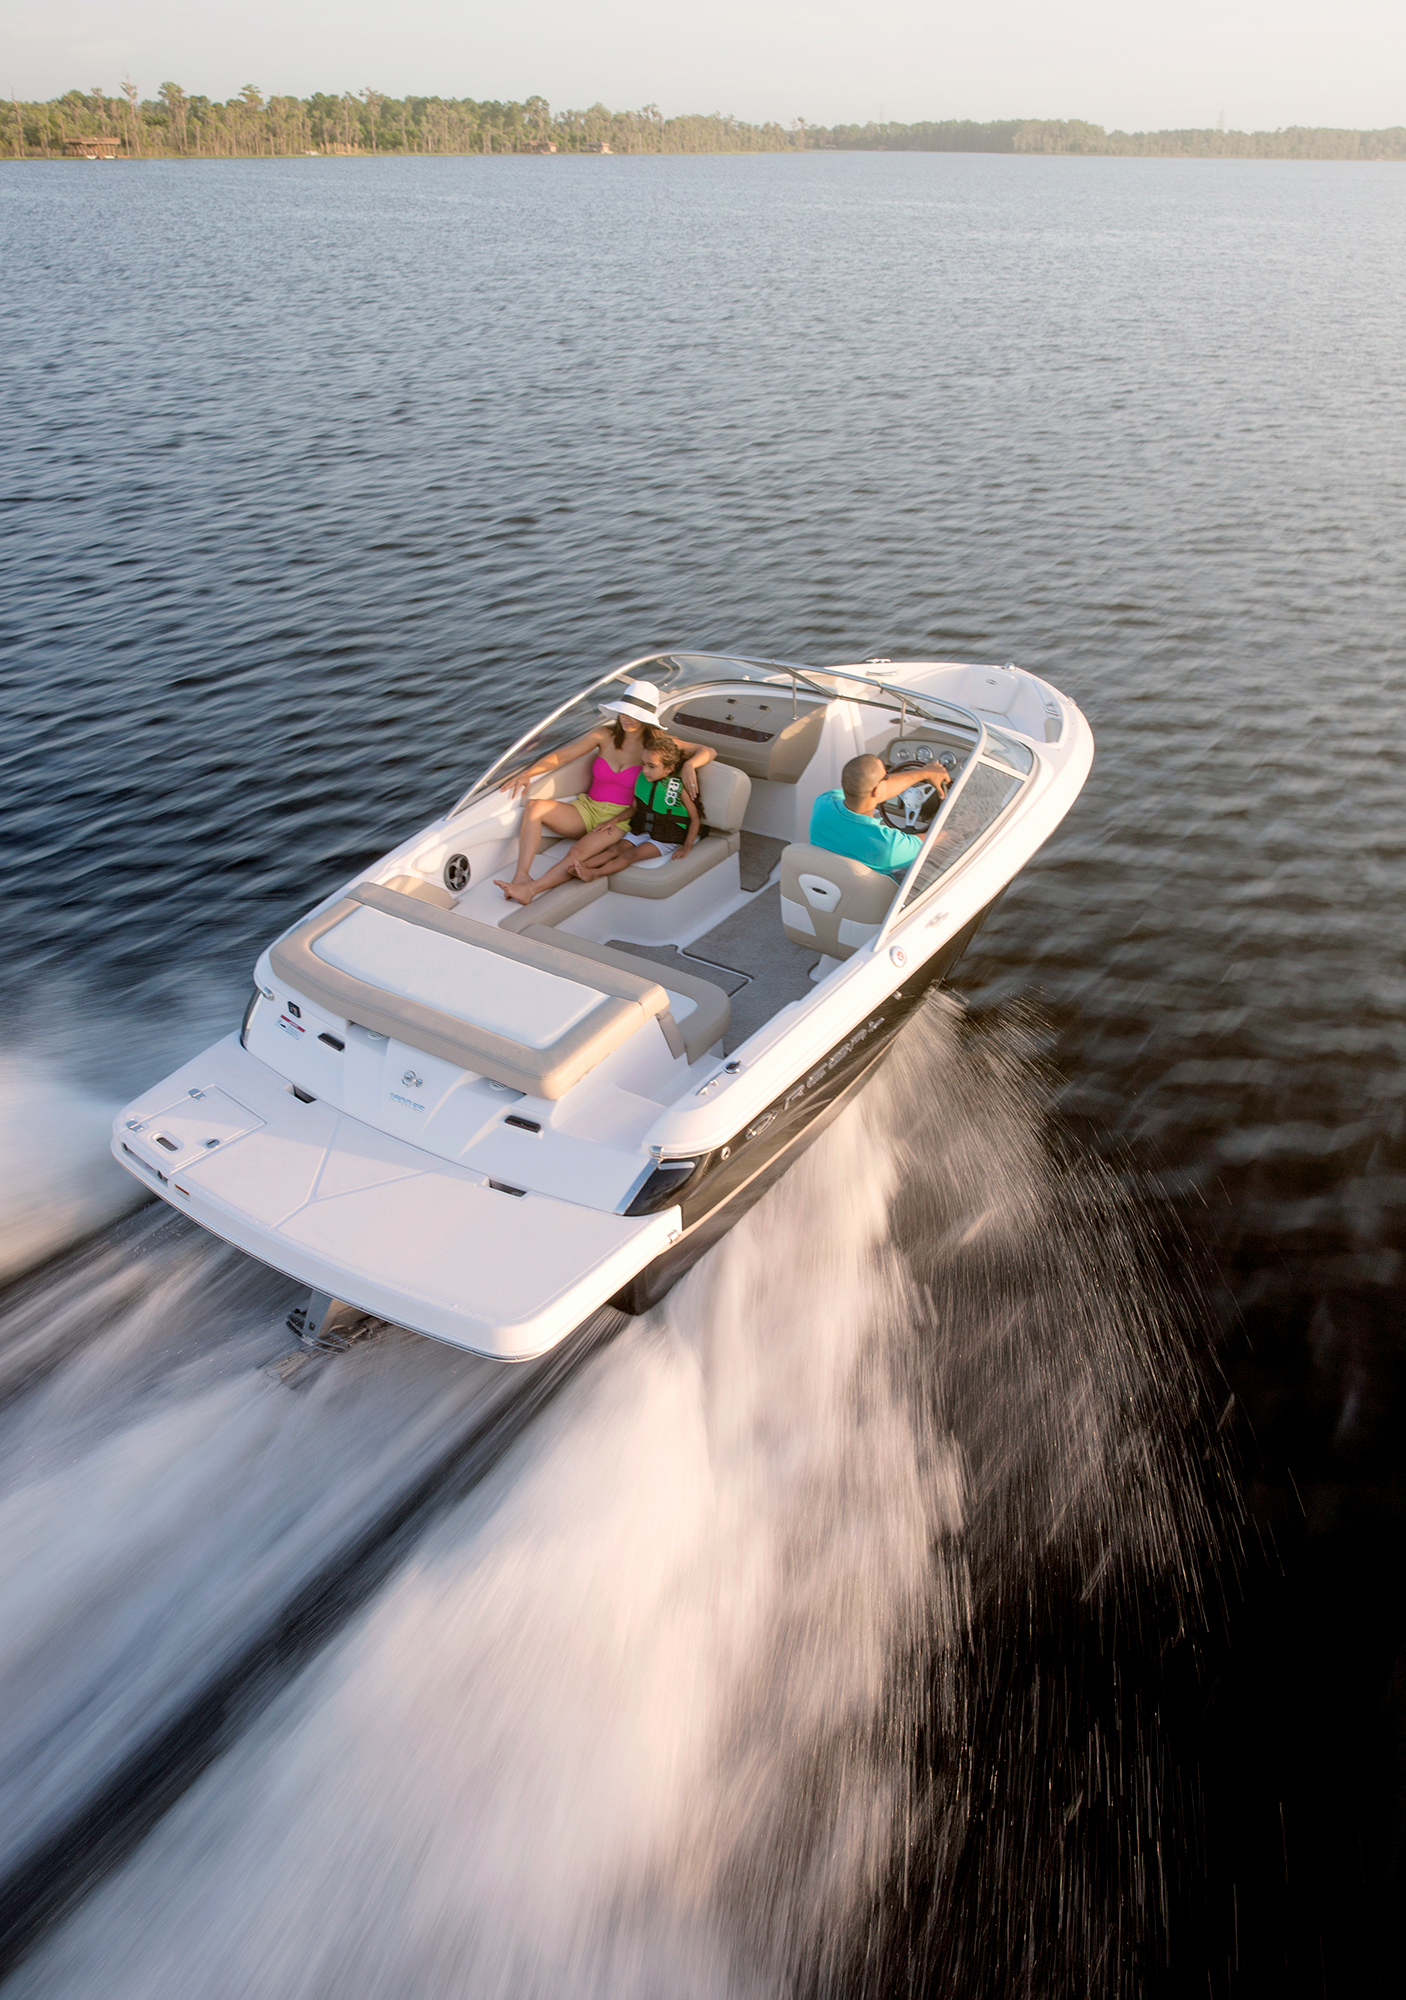 1900 Es Regal Boats Overview Volvo Boat Fuel Filter Location The Multi Posistion Backrest On Gives You Functionality Of A Bucket Seat Combined With Social Cockpit An Arena